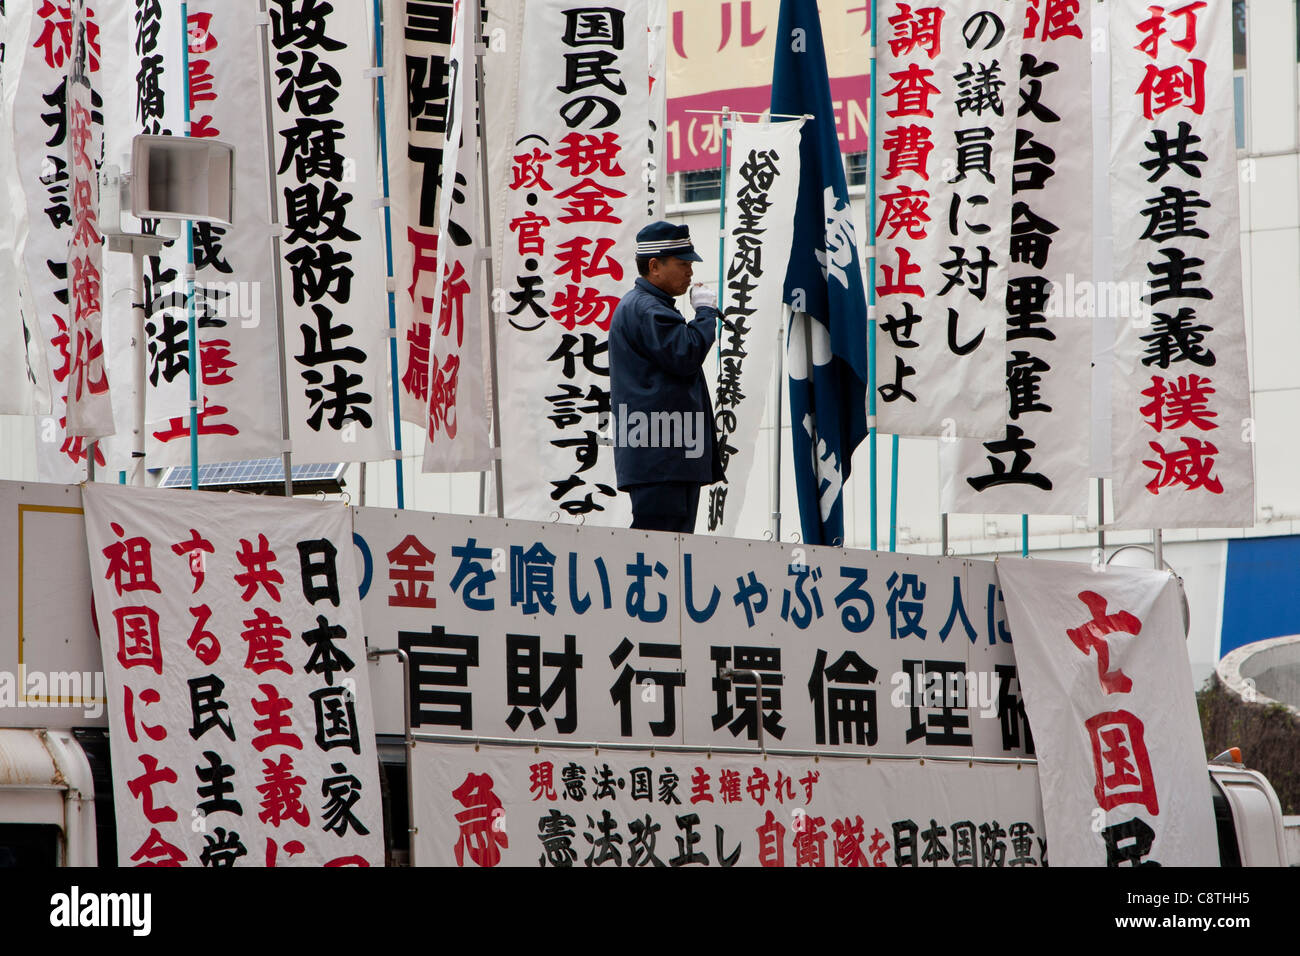 d3d98f0462 A member of the Uyoku Dantai or Japanese paramilitary right wing ...